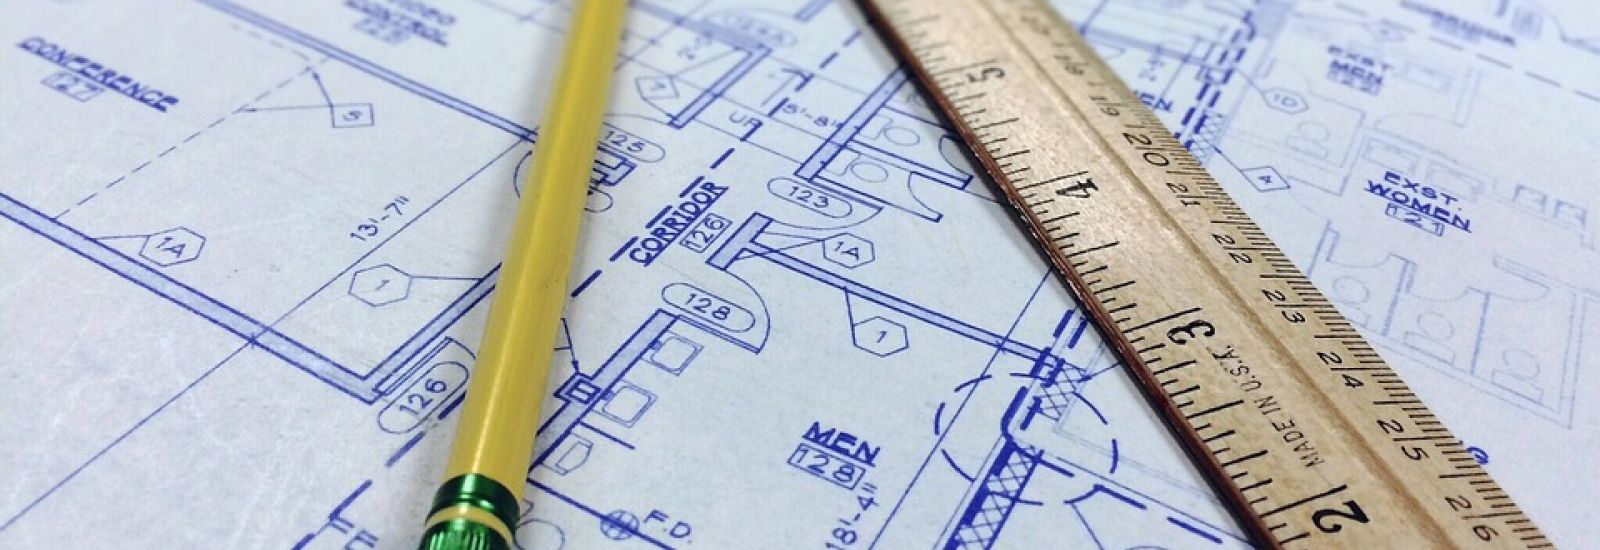 Image of a pencil and ruler on a 'blueprint' technical drawing